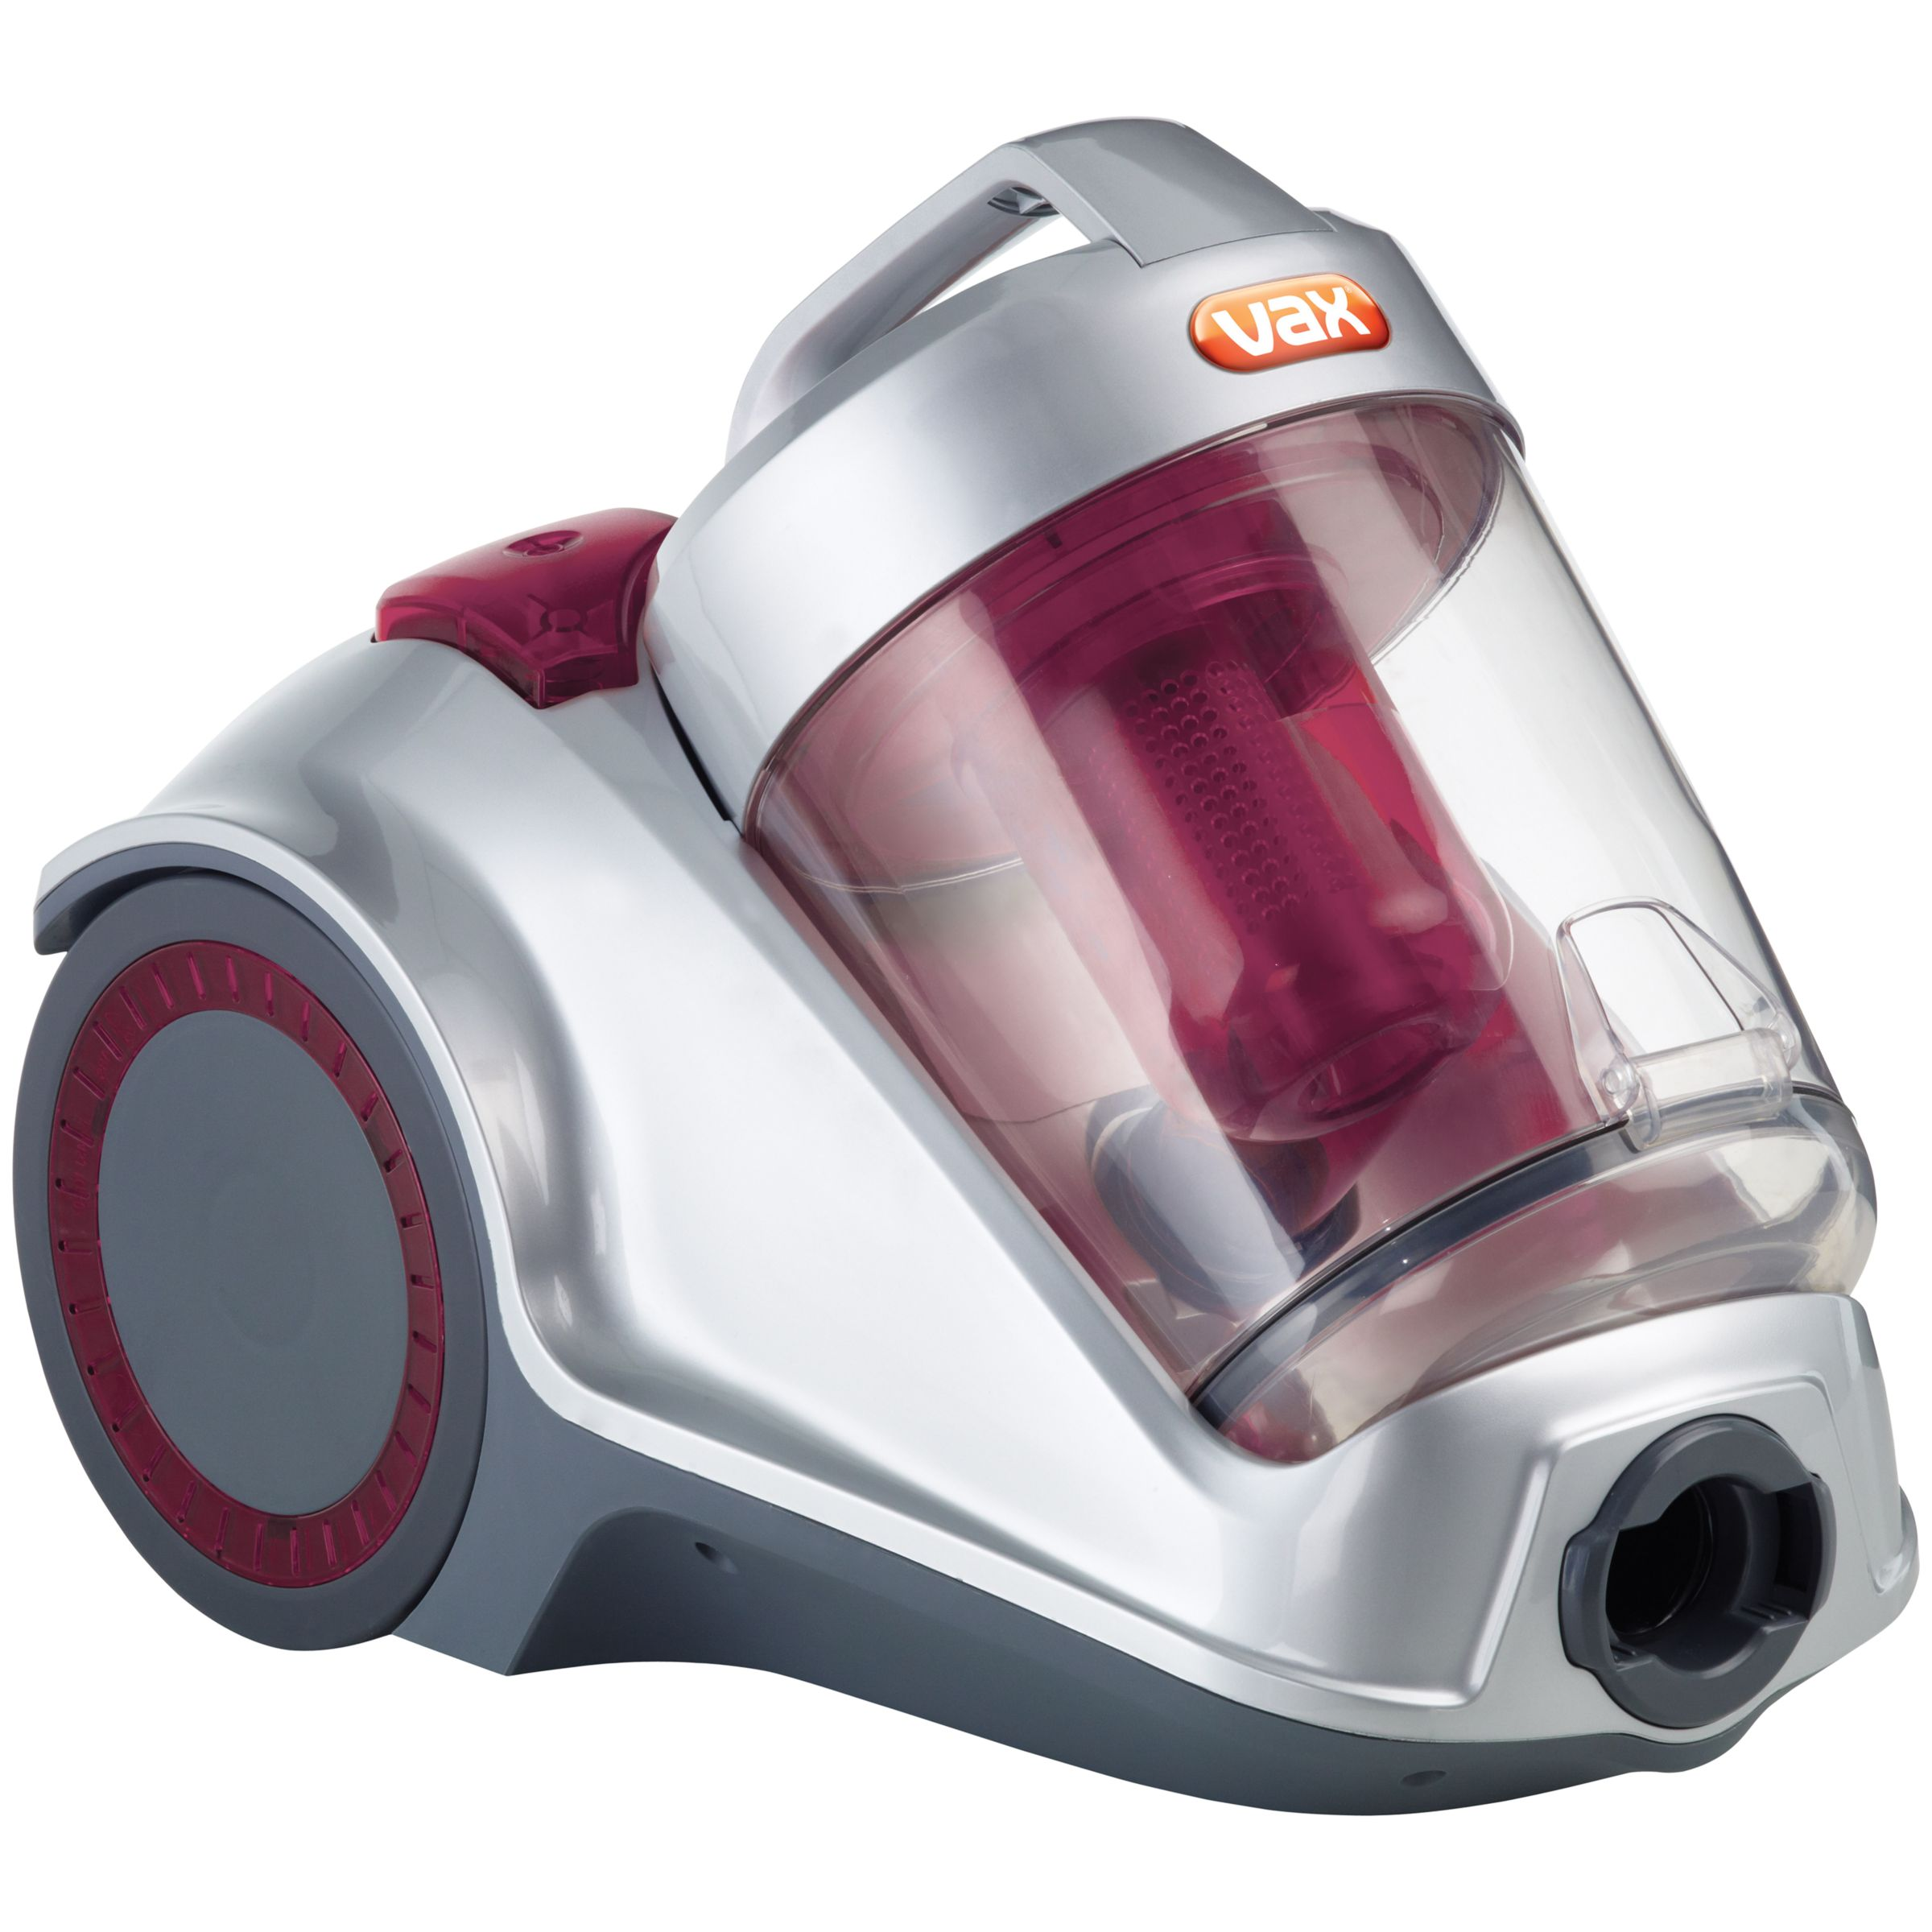 Vax C89-P6N-P Power 6 Pet Vacuum Cleaner